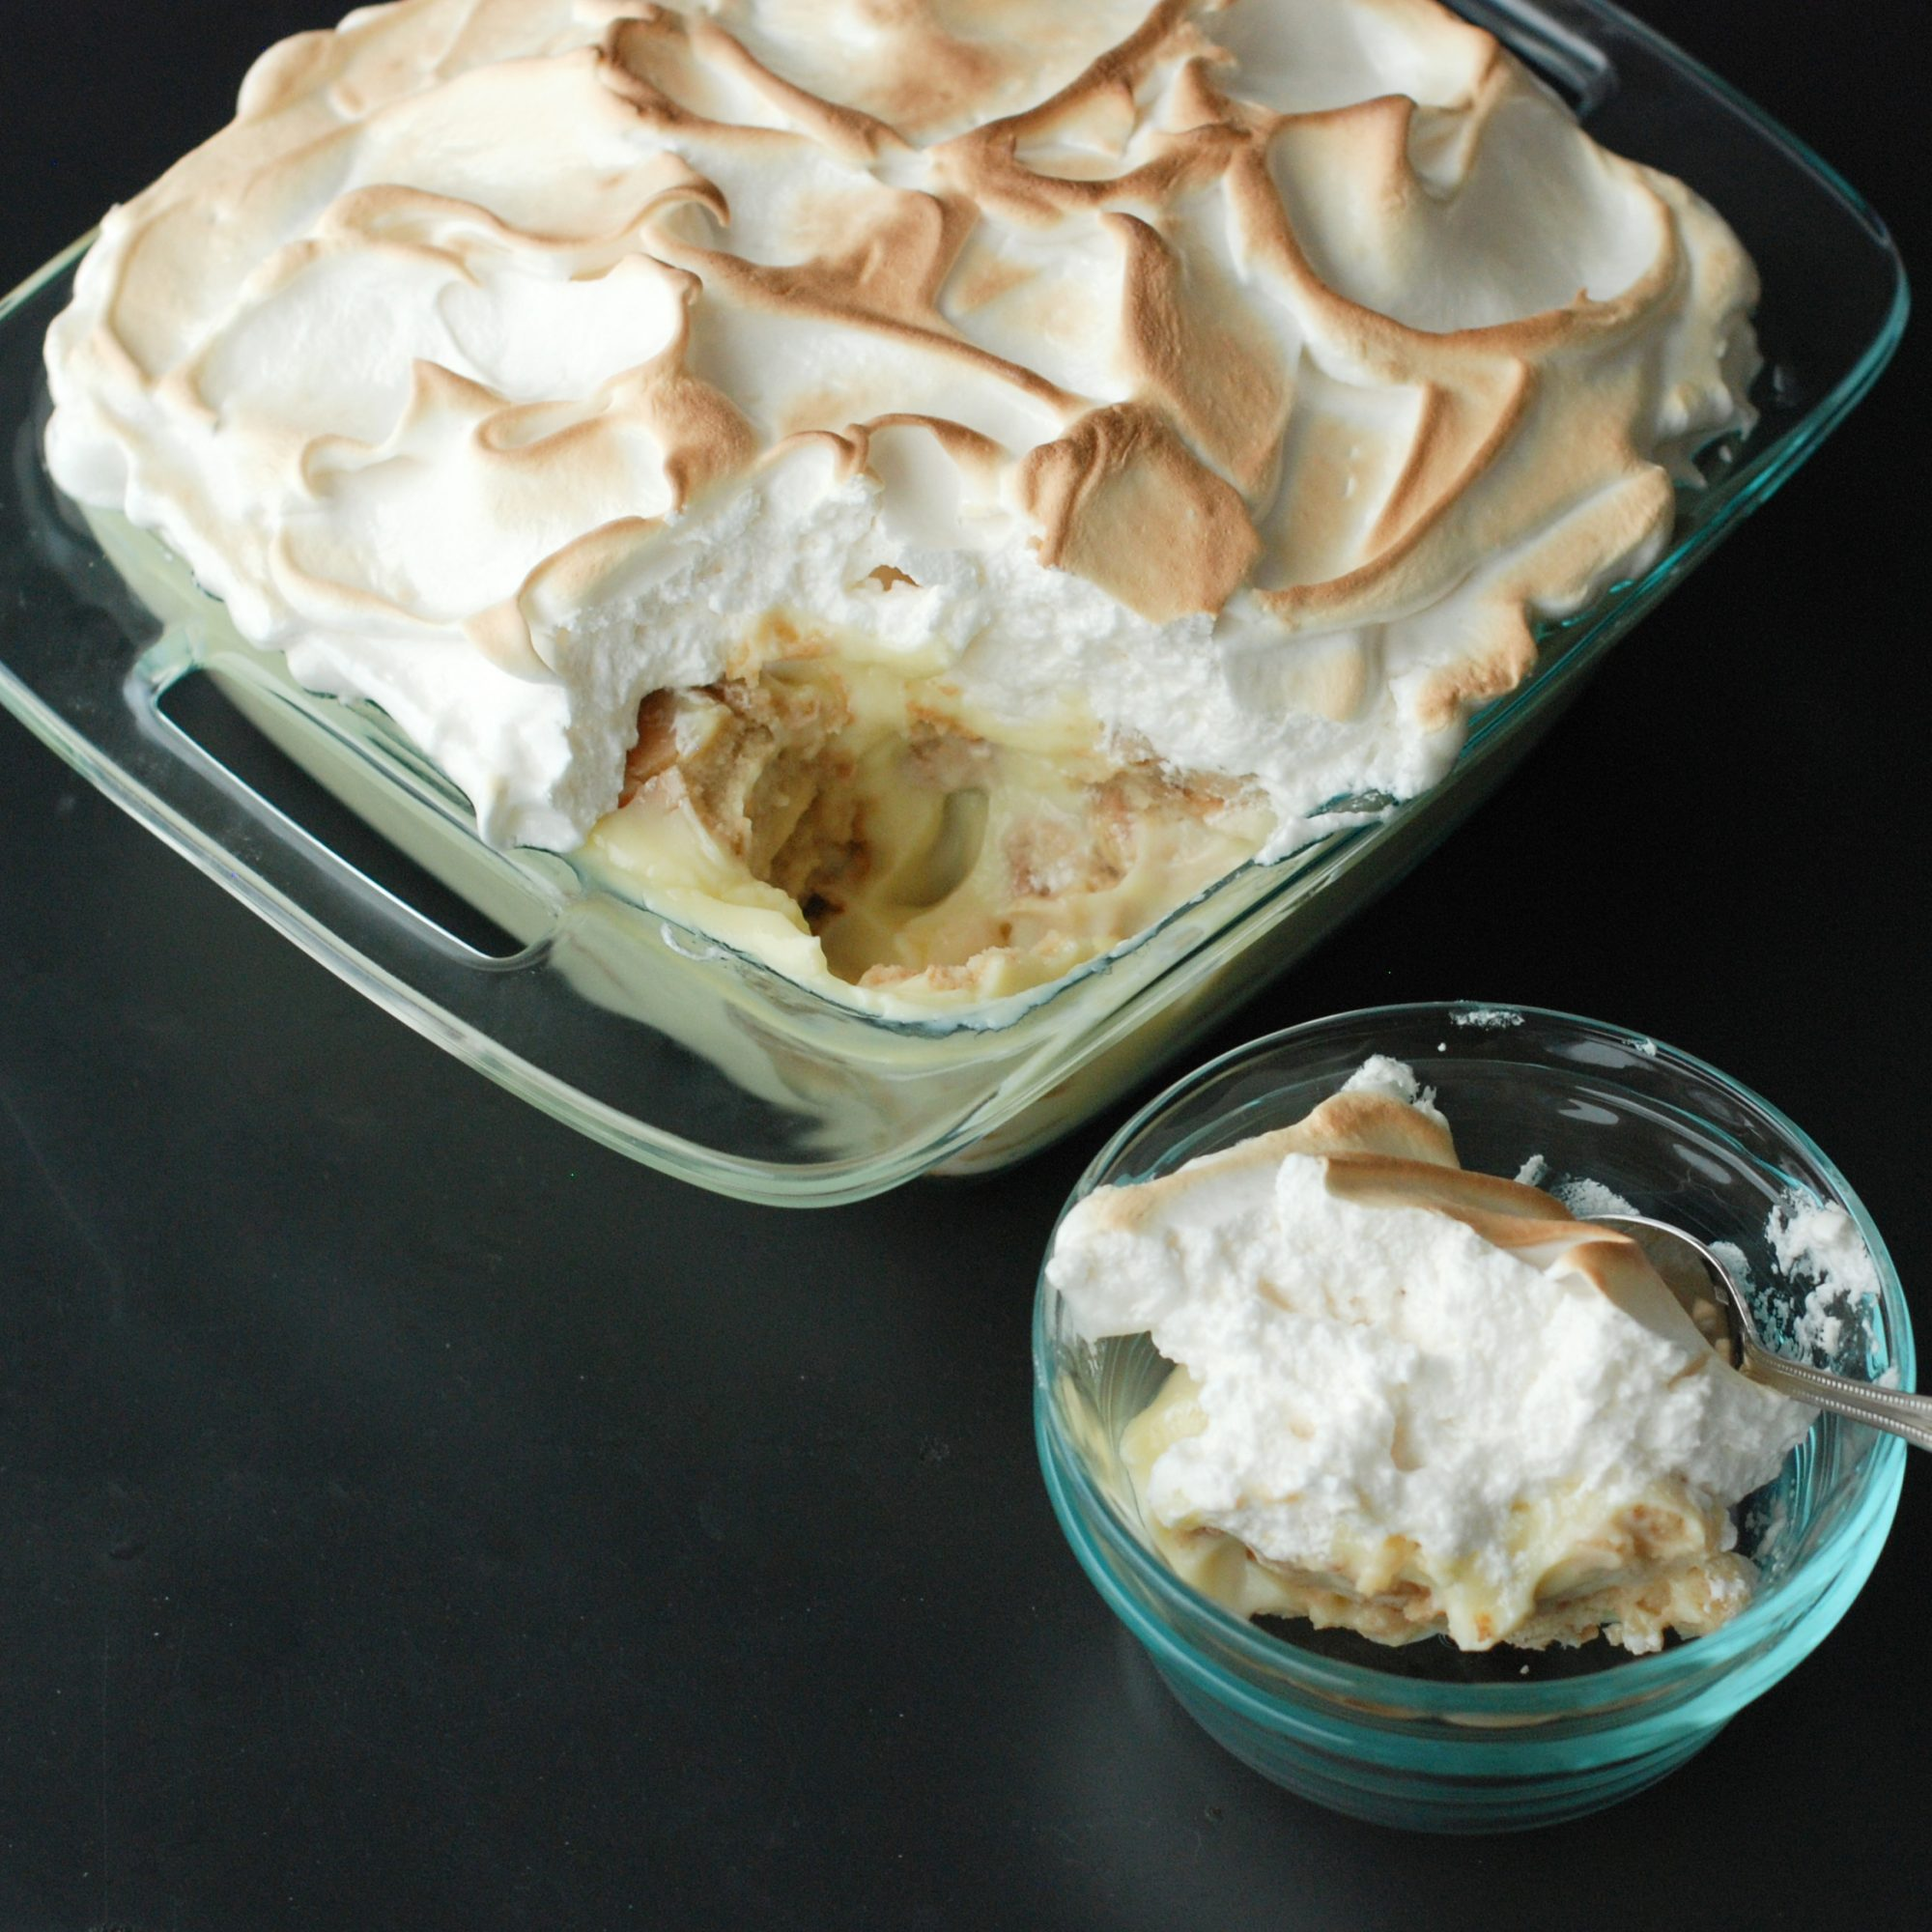 Andrew Zimmern's Best Recipes: Miss Myra's Banana Pudding